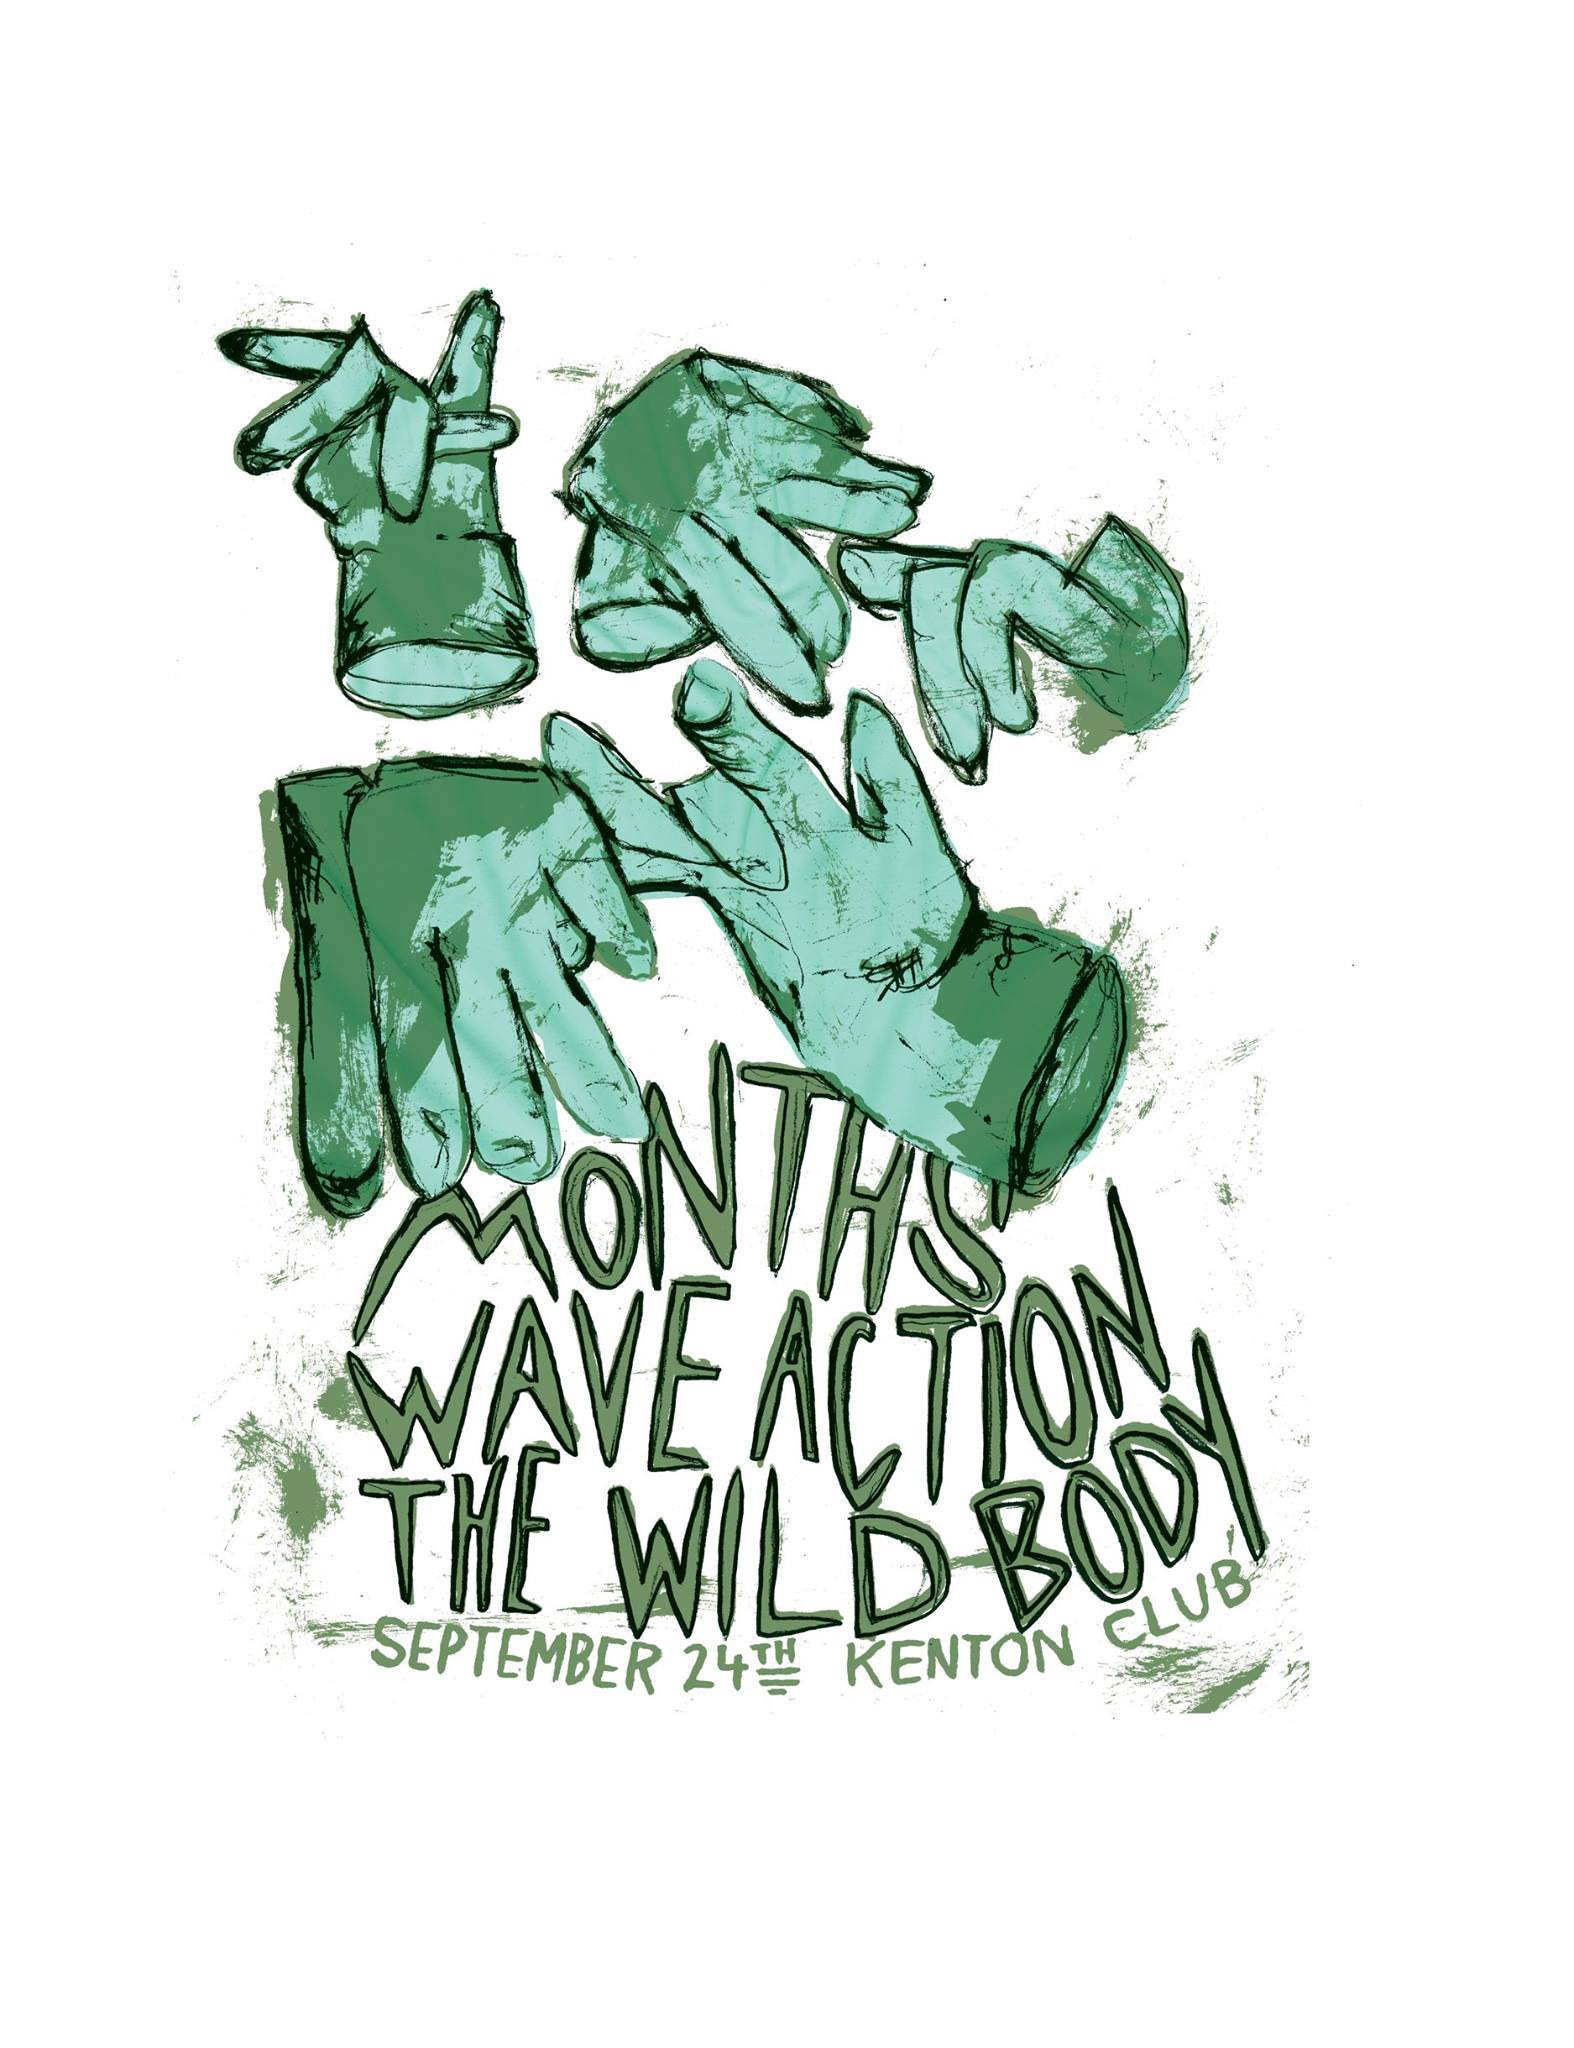 months play kenton club with wave action and the wild body on saturday september 24 2016